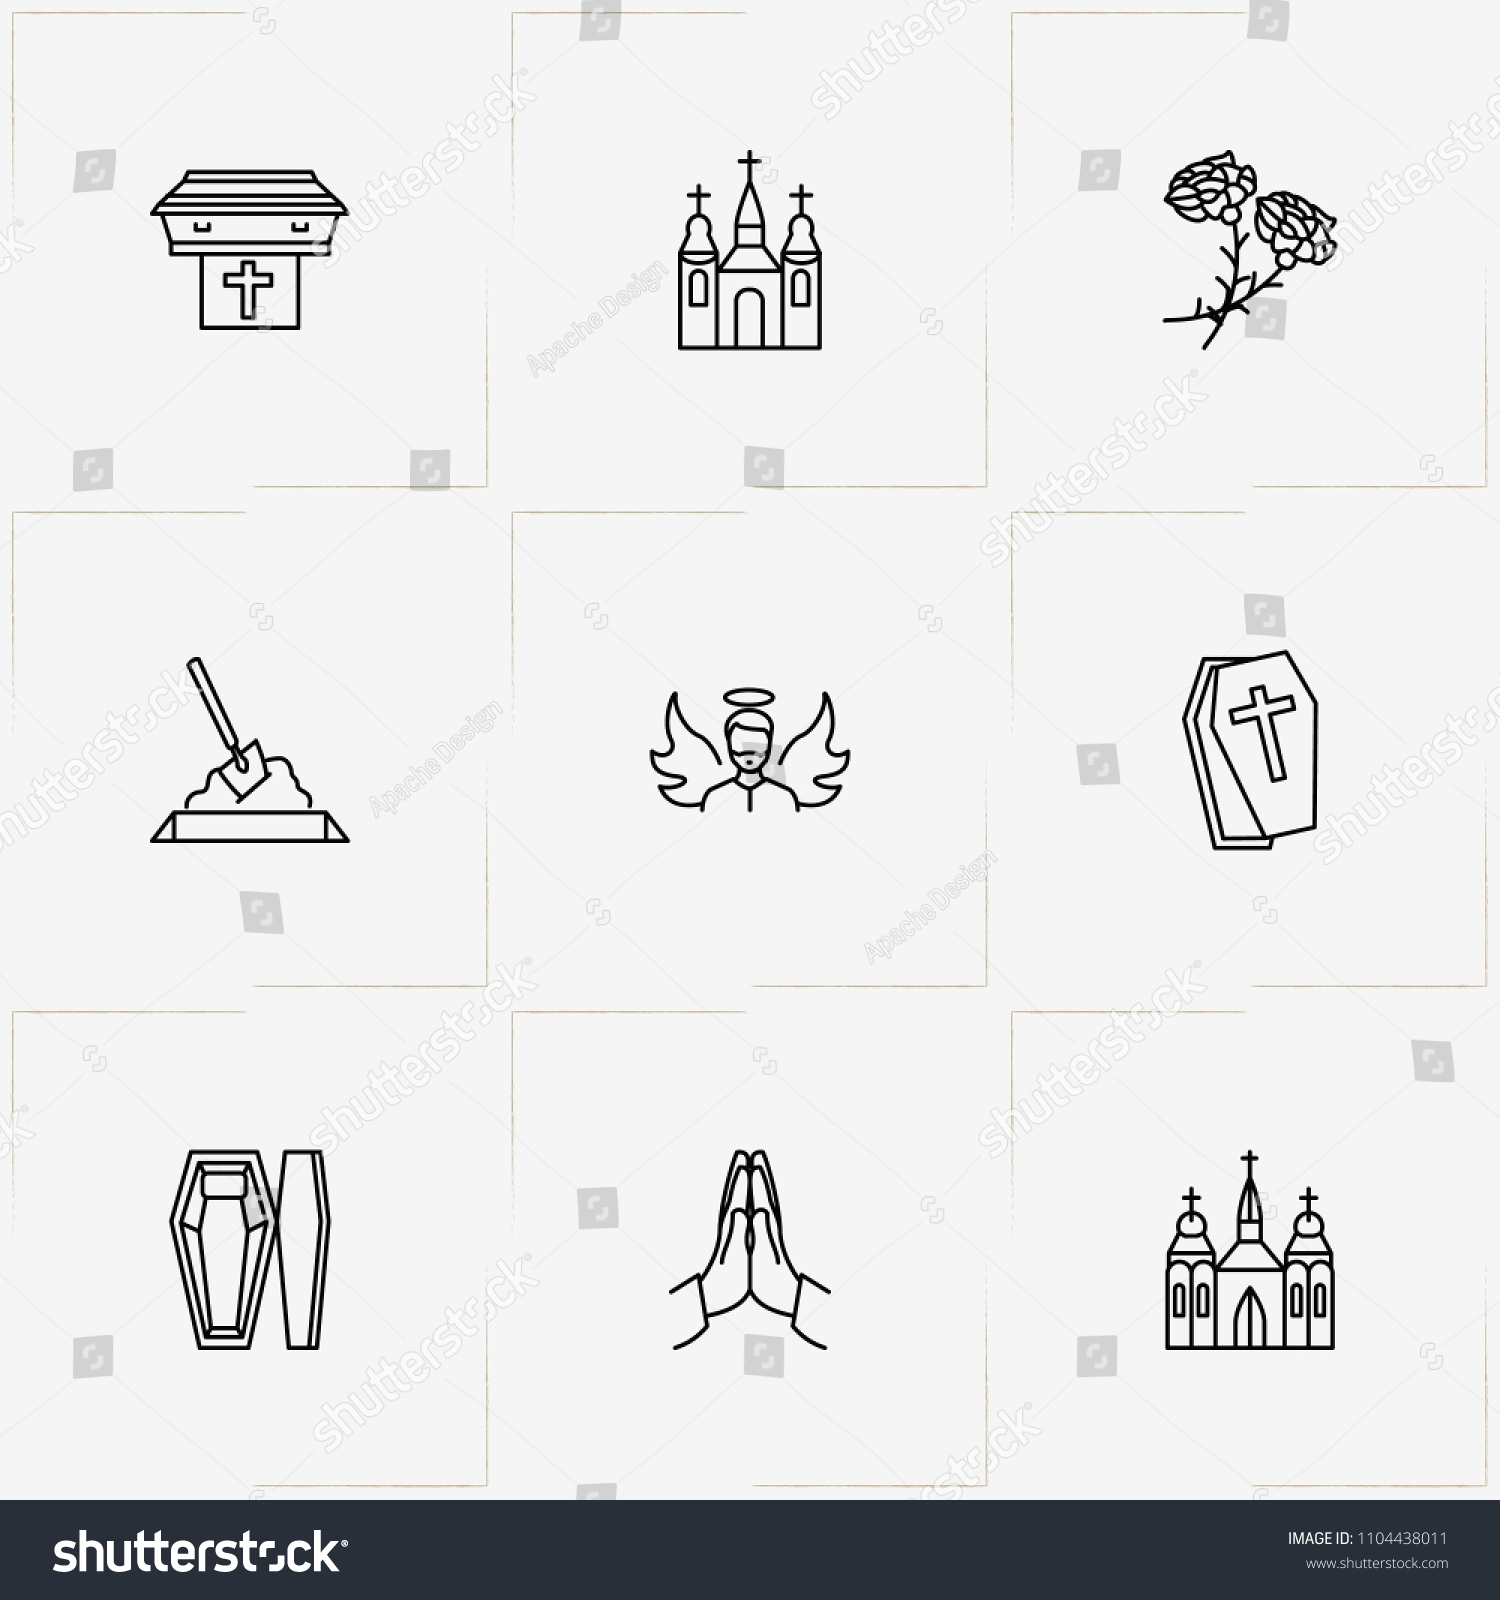 Funeral line icon set angel funeral stock vector 1104438011 funeral line icon set with angel funeral flowers and pray izmirmasajfo